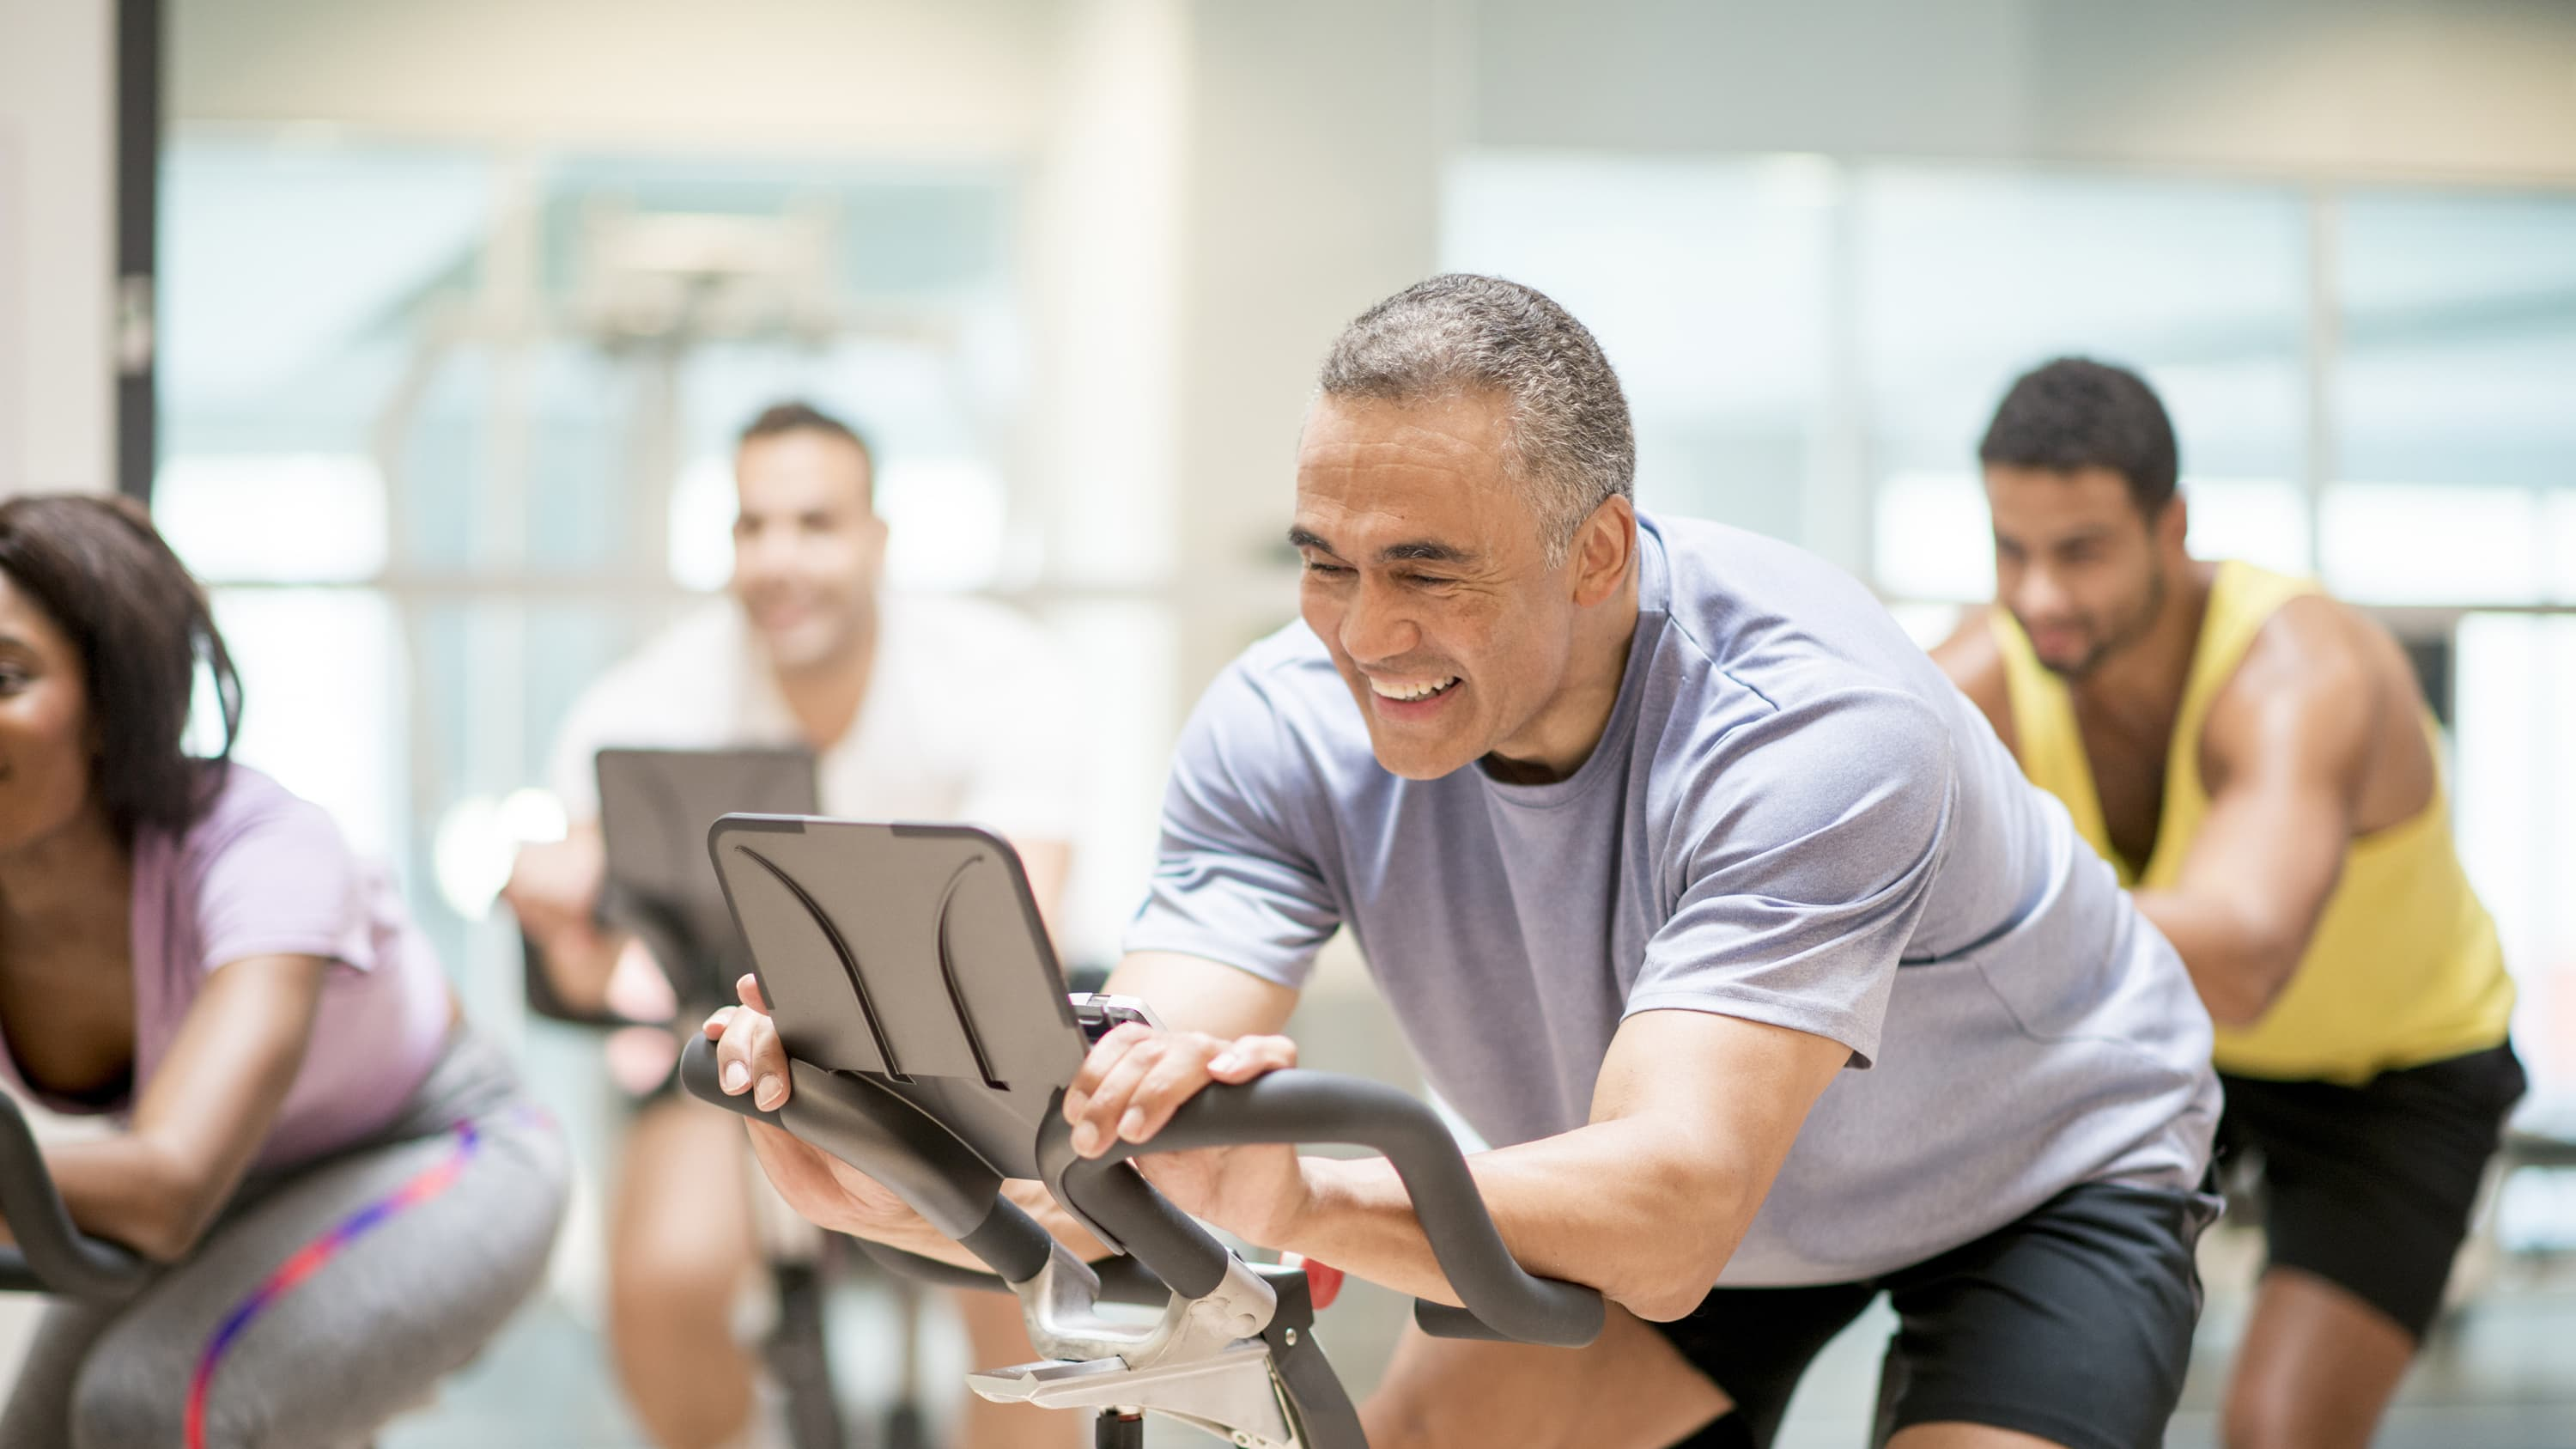 A middle-aged man is back in the gym on the exercise bike after treatment for coronary atherosclerosis.